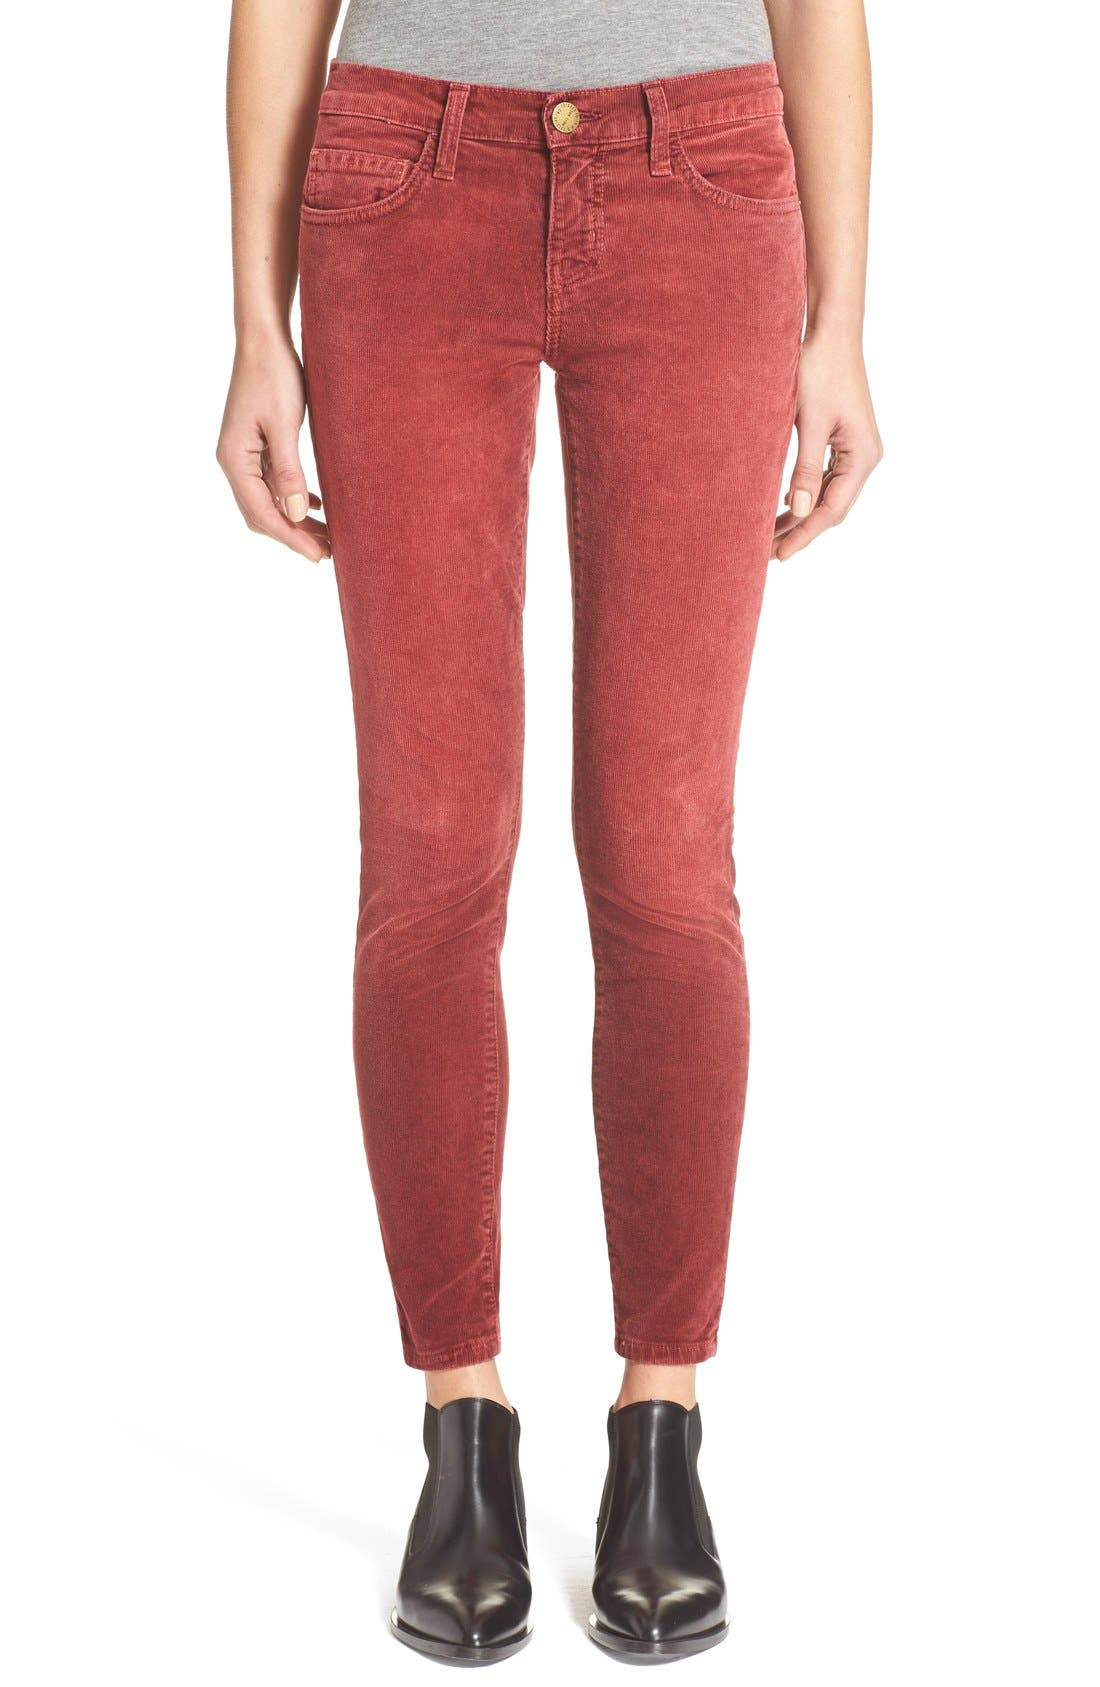 CURRENT/ELLIOTT,                             'The Stiletto' Stretch Skinny Corduroy Pants,                             Main thumbnail 1, color,                             601